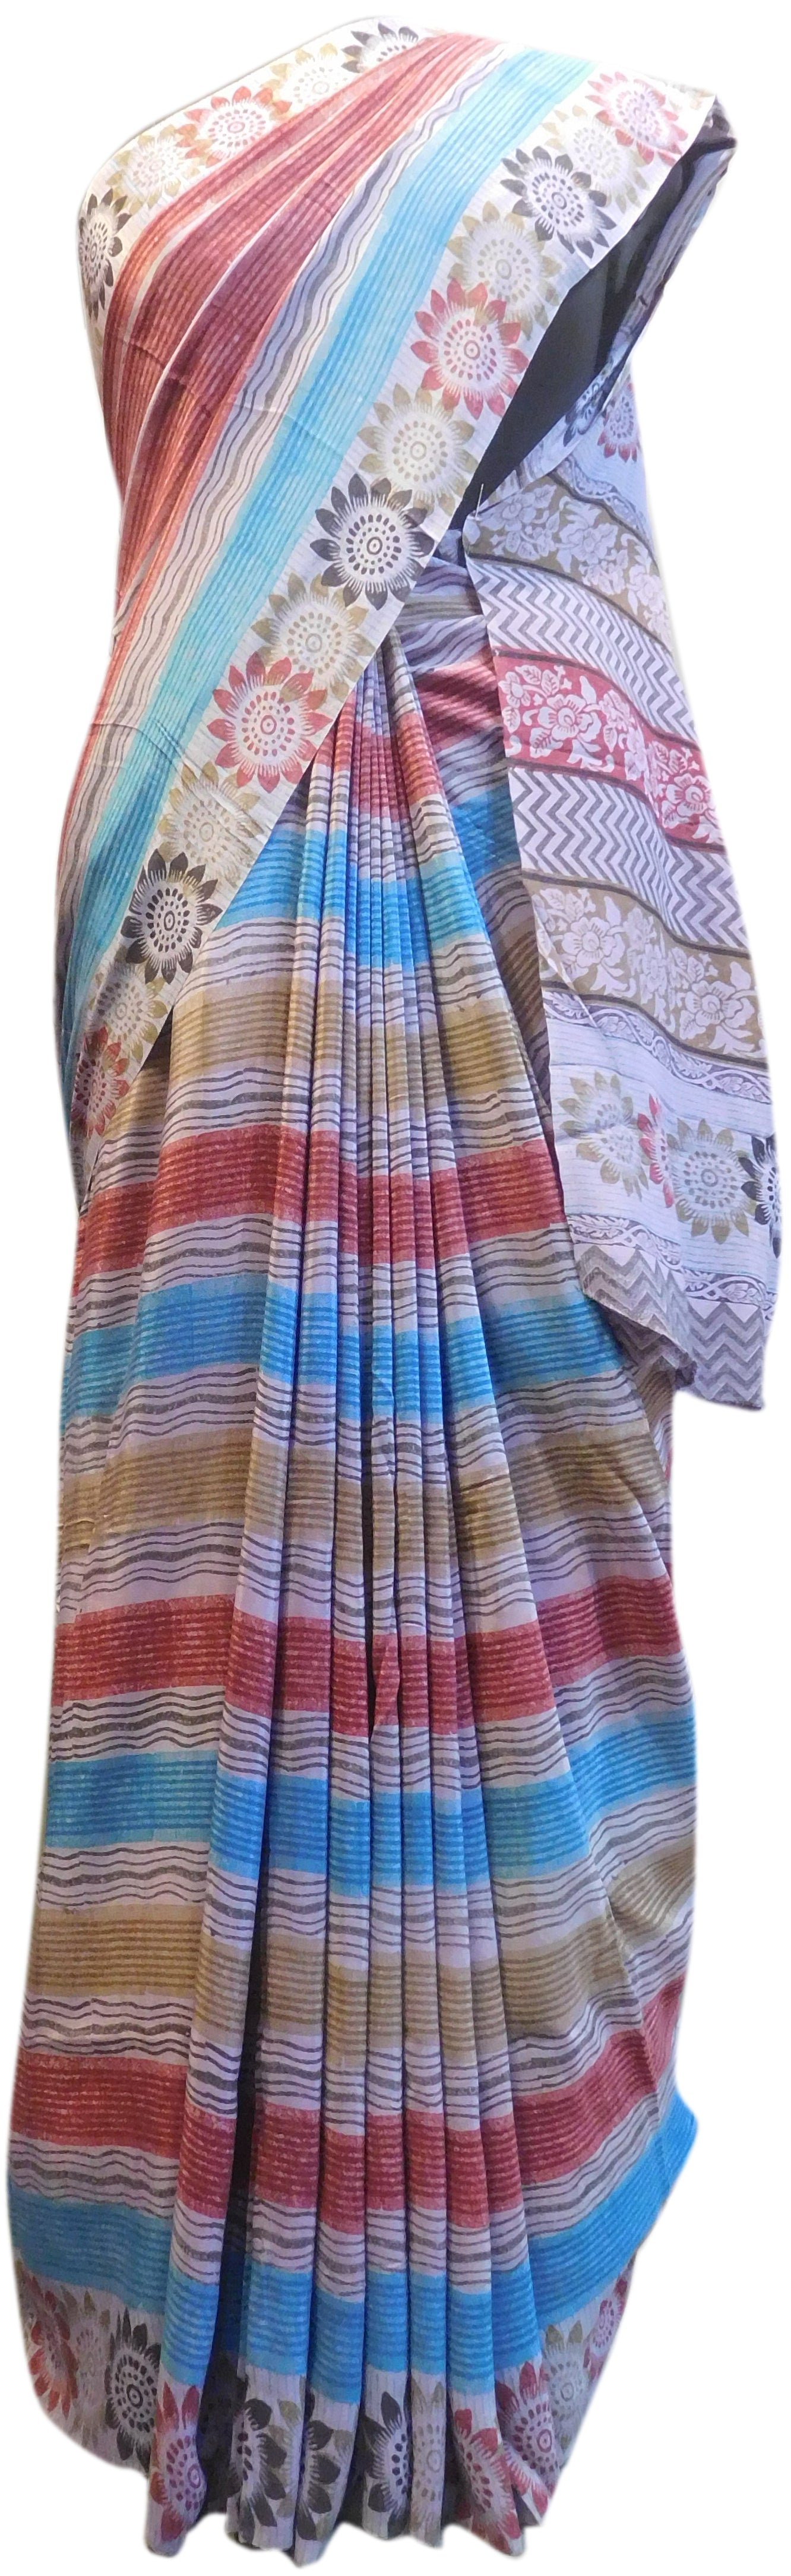 Multicolor Designer Wedding Partywear Pure Crepe Hand Brush Reprinted Kolkata Saree Sari RP160